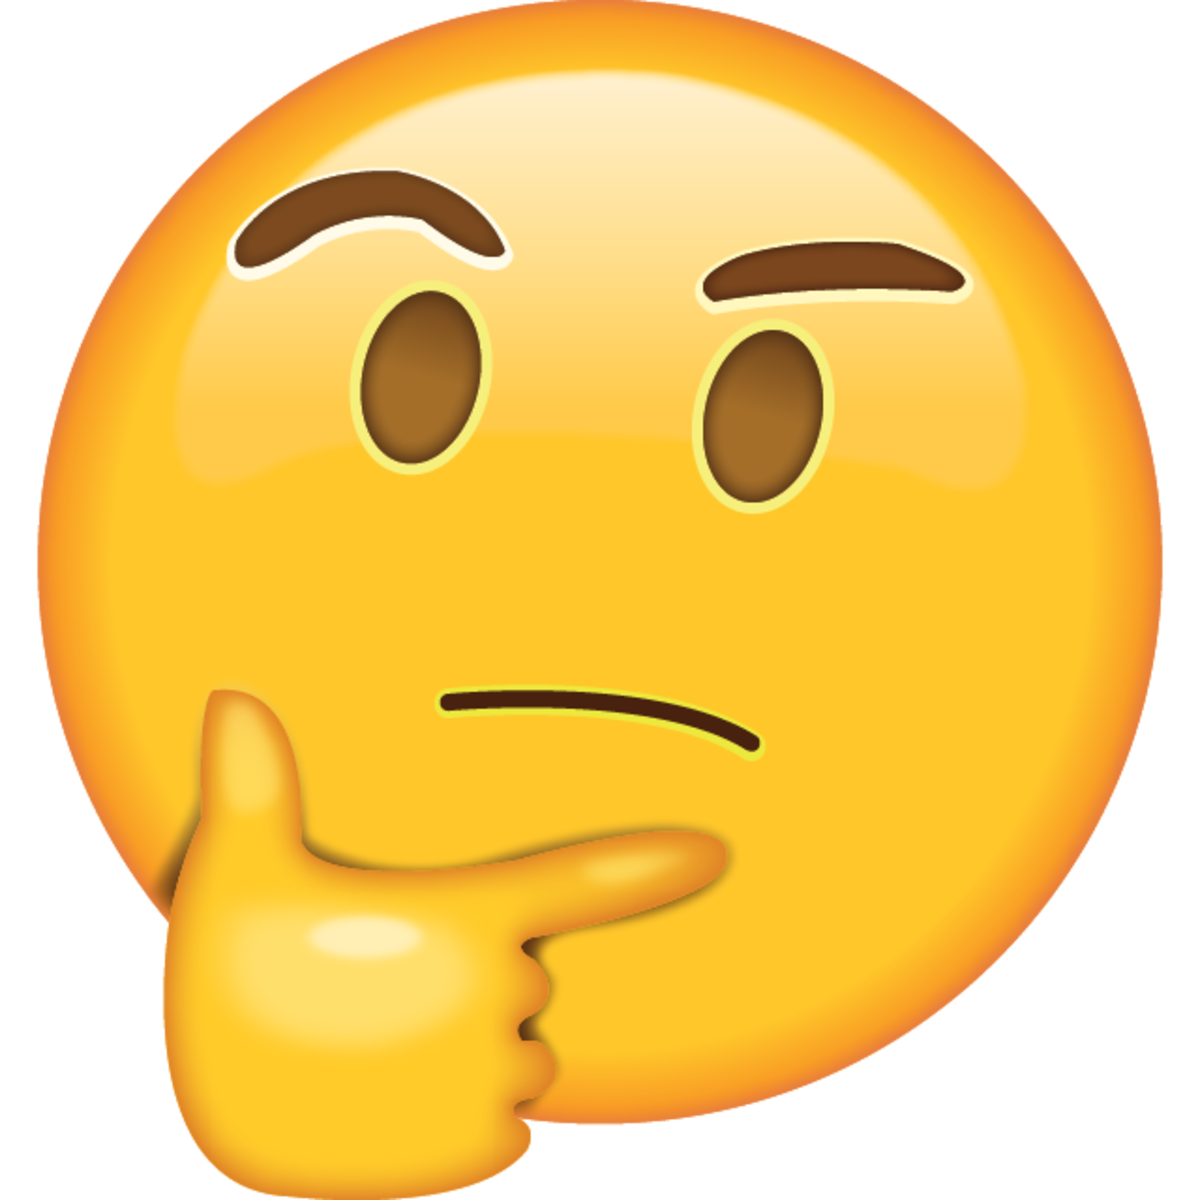 Emoticon Thinking Thought World Whatsapp Day Emoji PNG Image